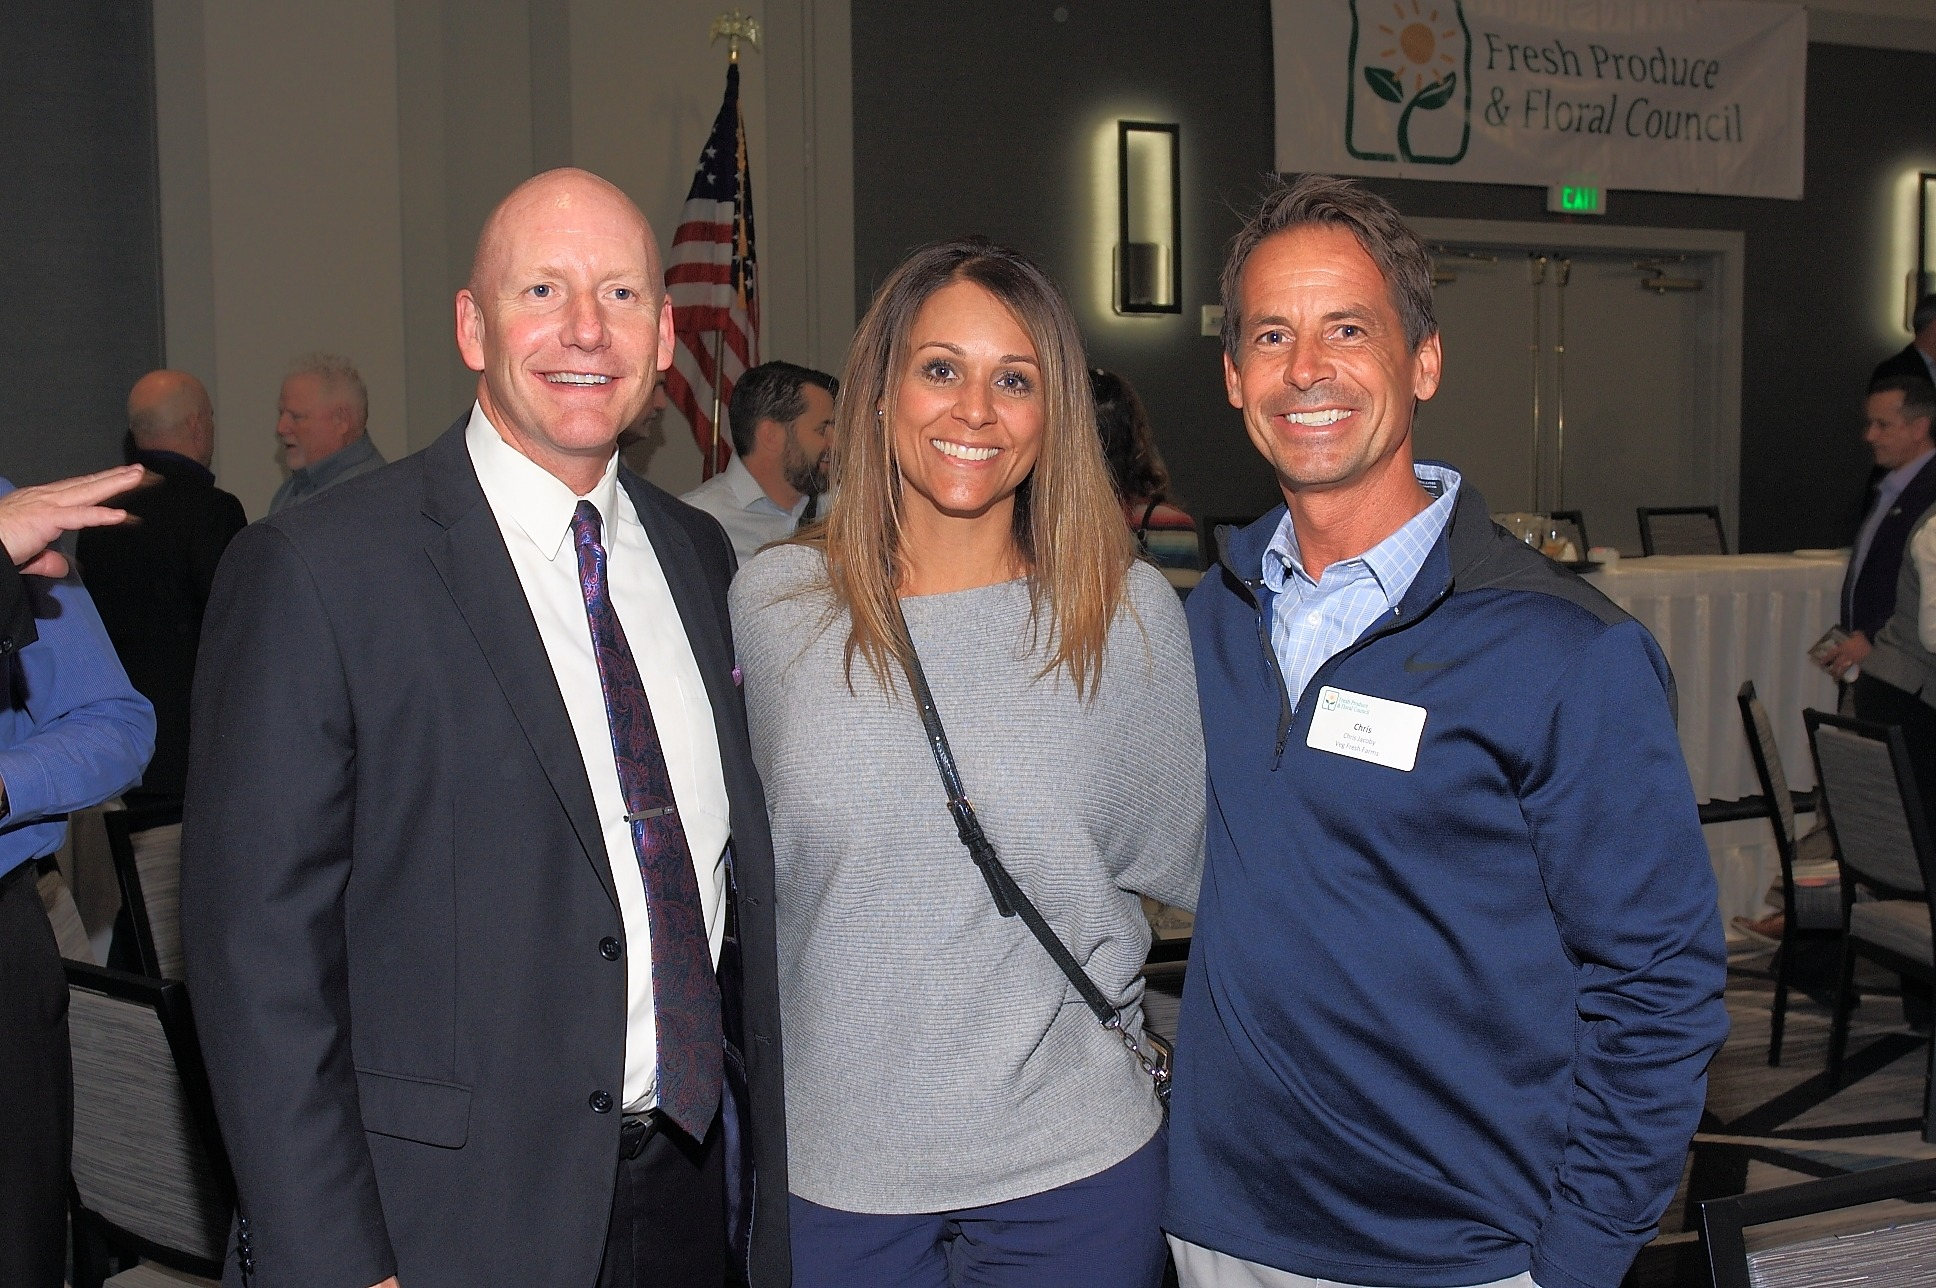 Don Gann, Stater Bros. Markets; Sheryl Salazar, Albertsons/Vons/Pavilions; and Chris Jacoby, Veg Fresh Farms